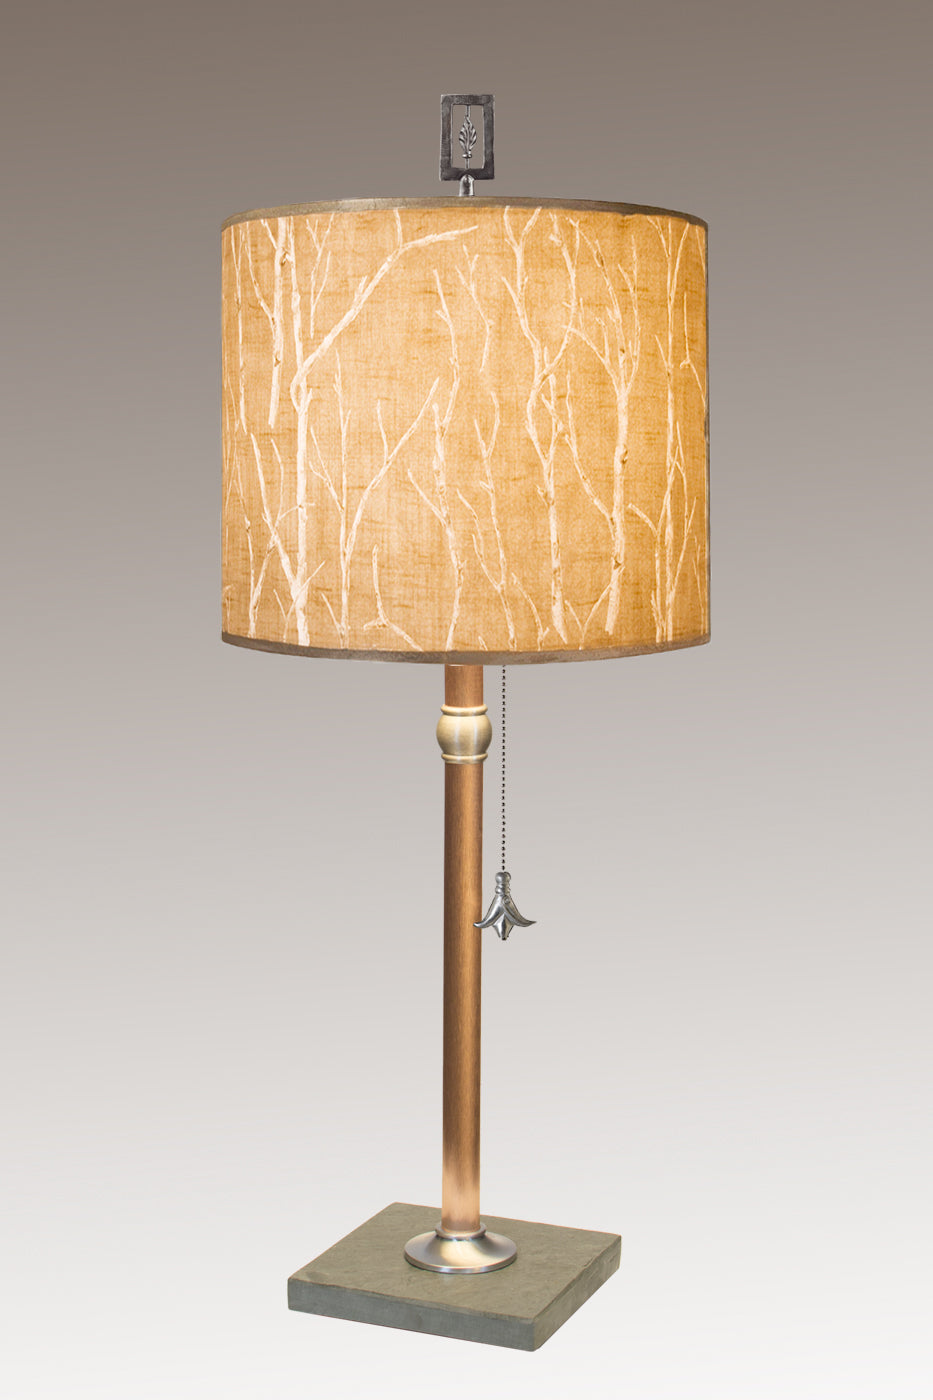 Copper Table Lamp with Medium Drum Shade in Twigs